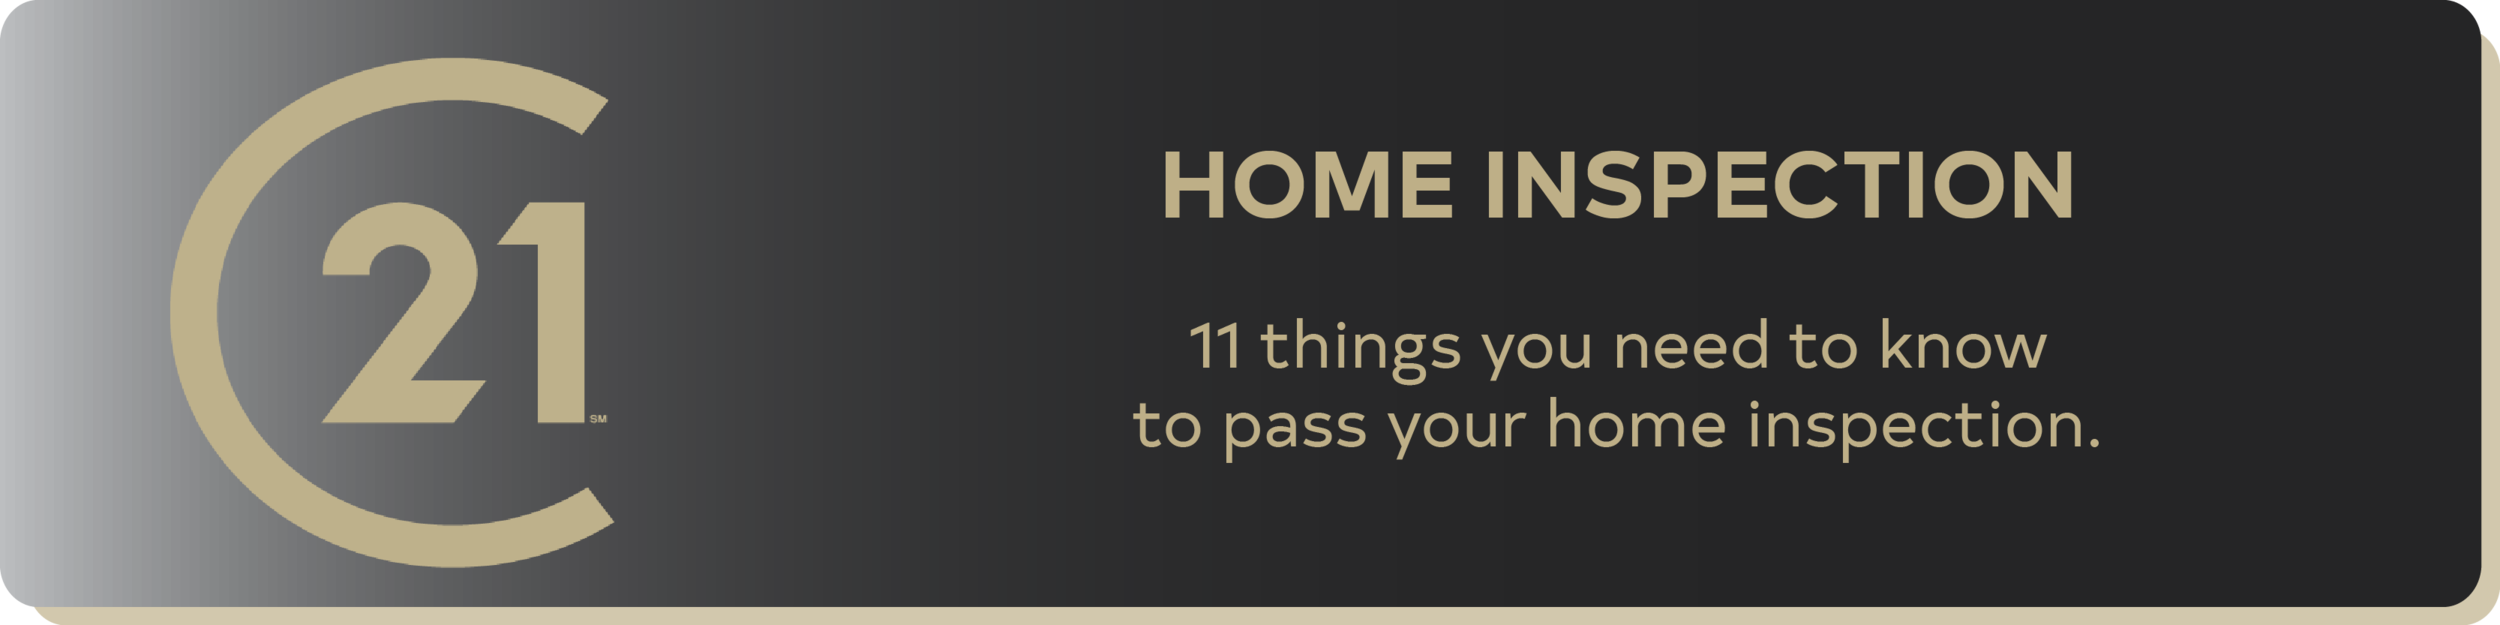 home inspection.png